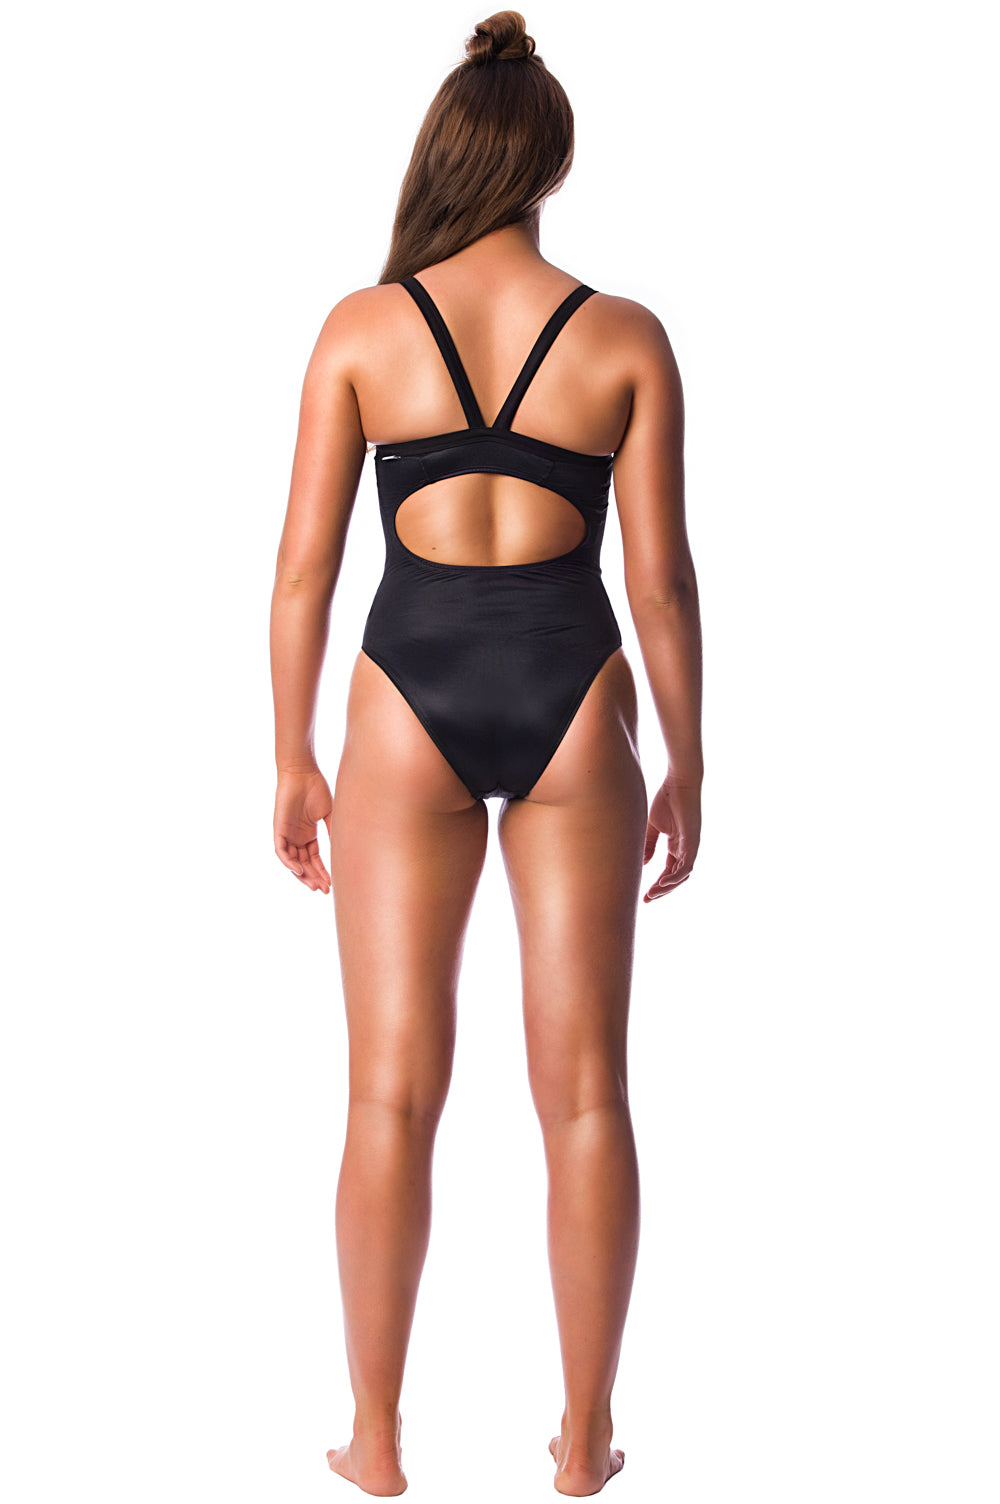 Pitch Black Ladies Racers - Shop Zealous Training Swimwear